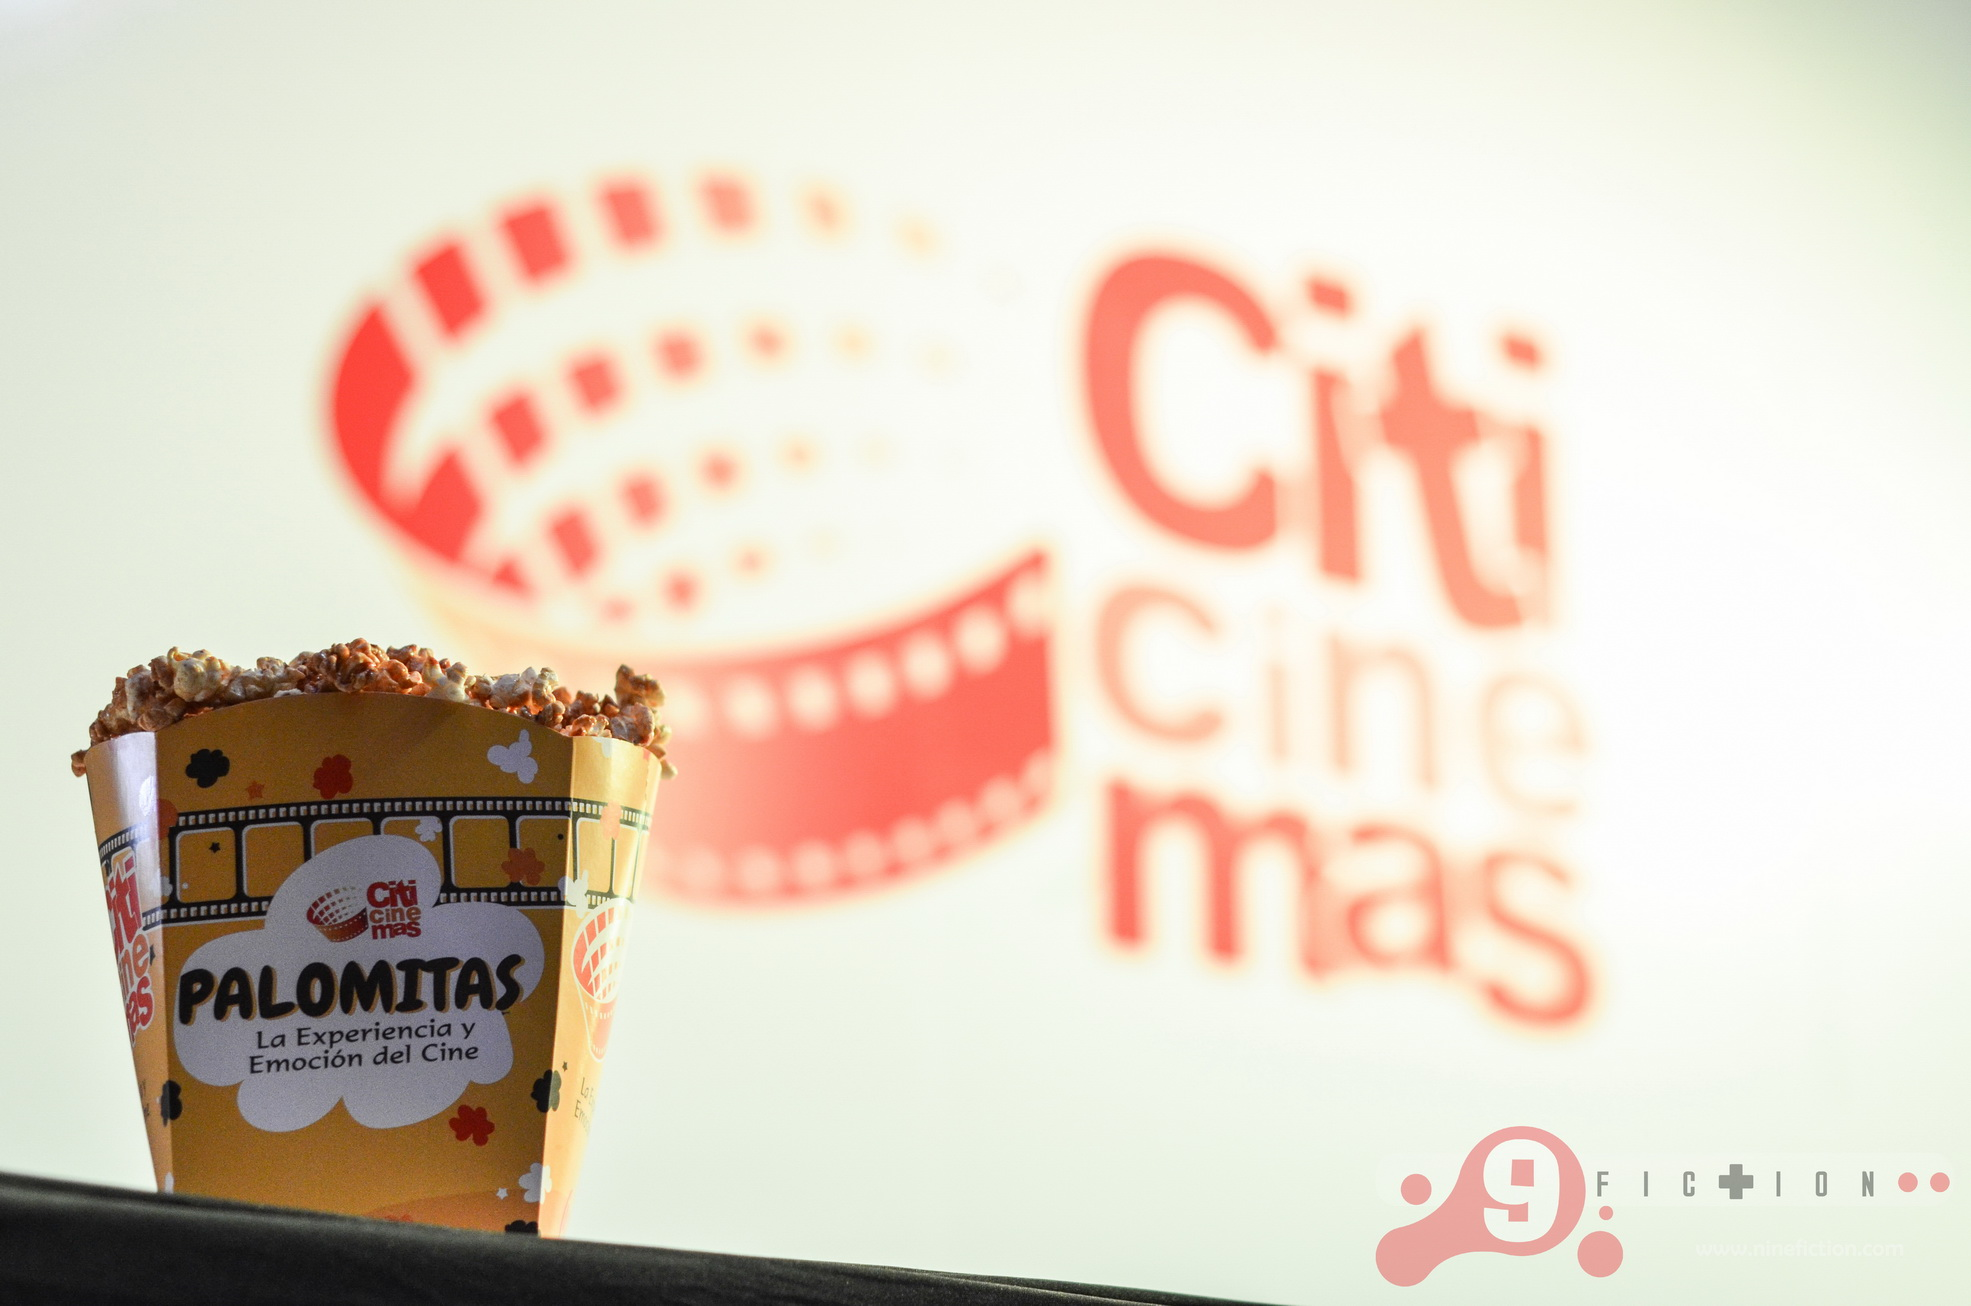 25 CitiCinema - 2018 - Guadalajara - Foto Salvador Tabares - Nine Fiction